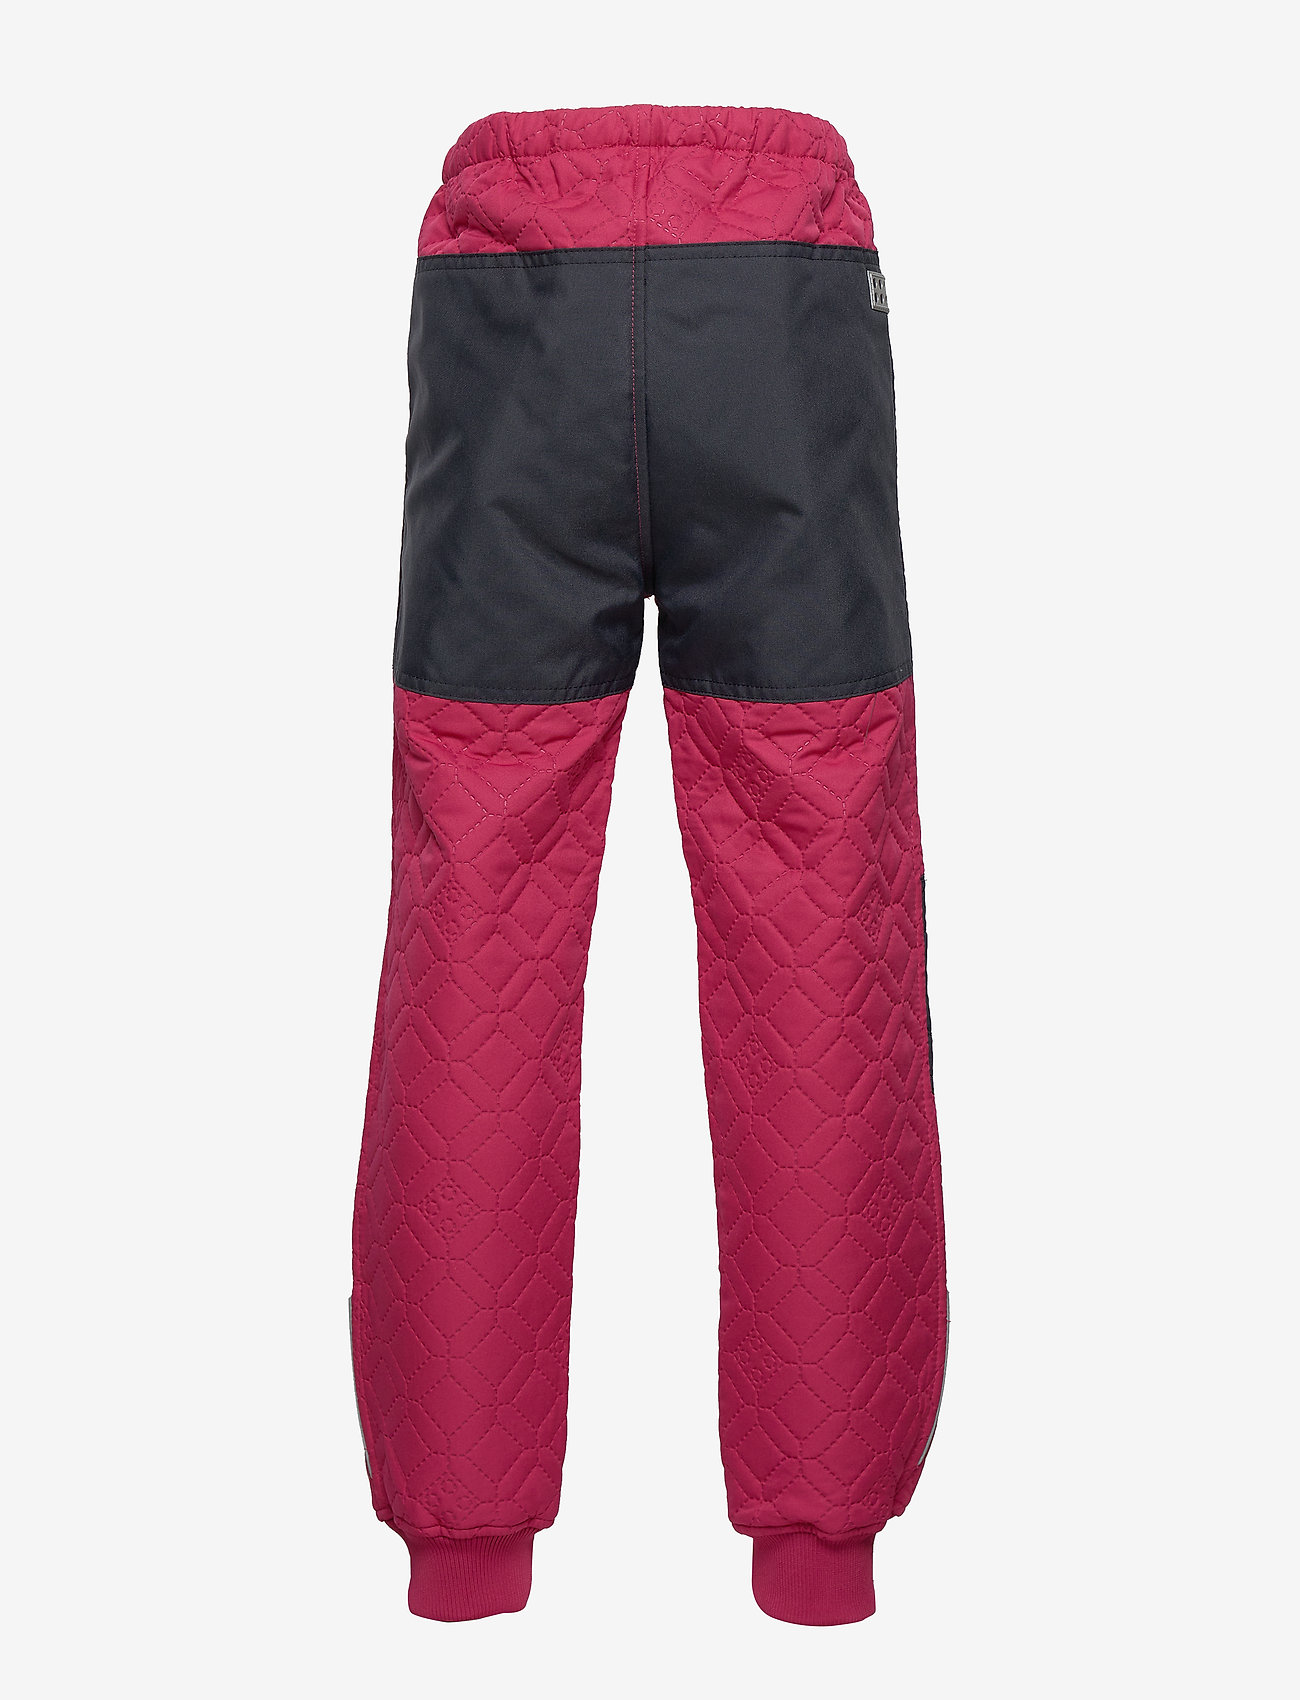 Lego wear - LWPOUL 200 -  PANT (THERMO) - bas - bordeaux - 1